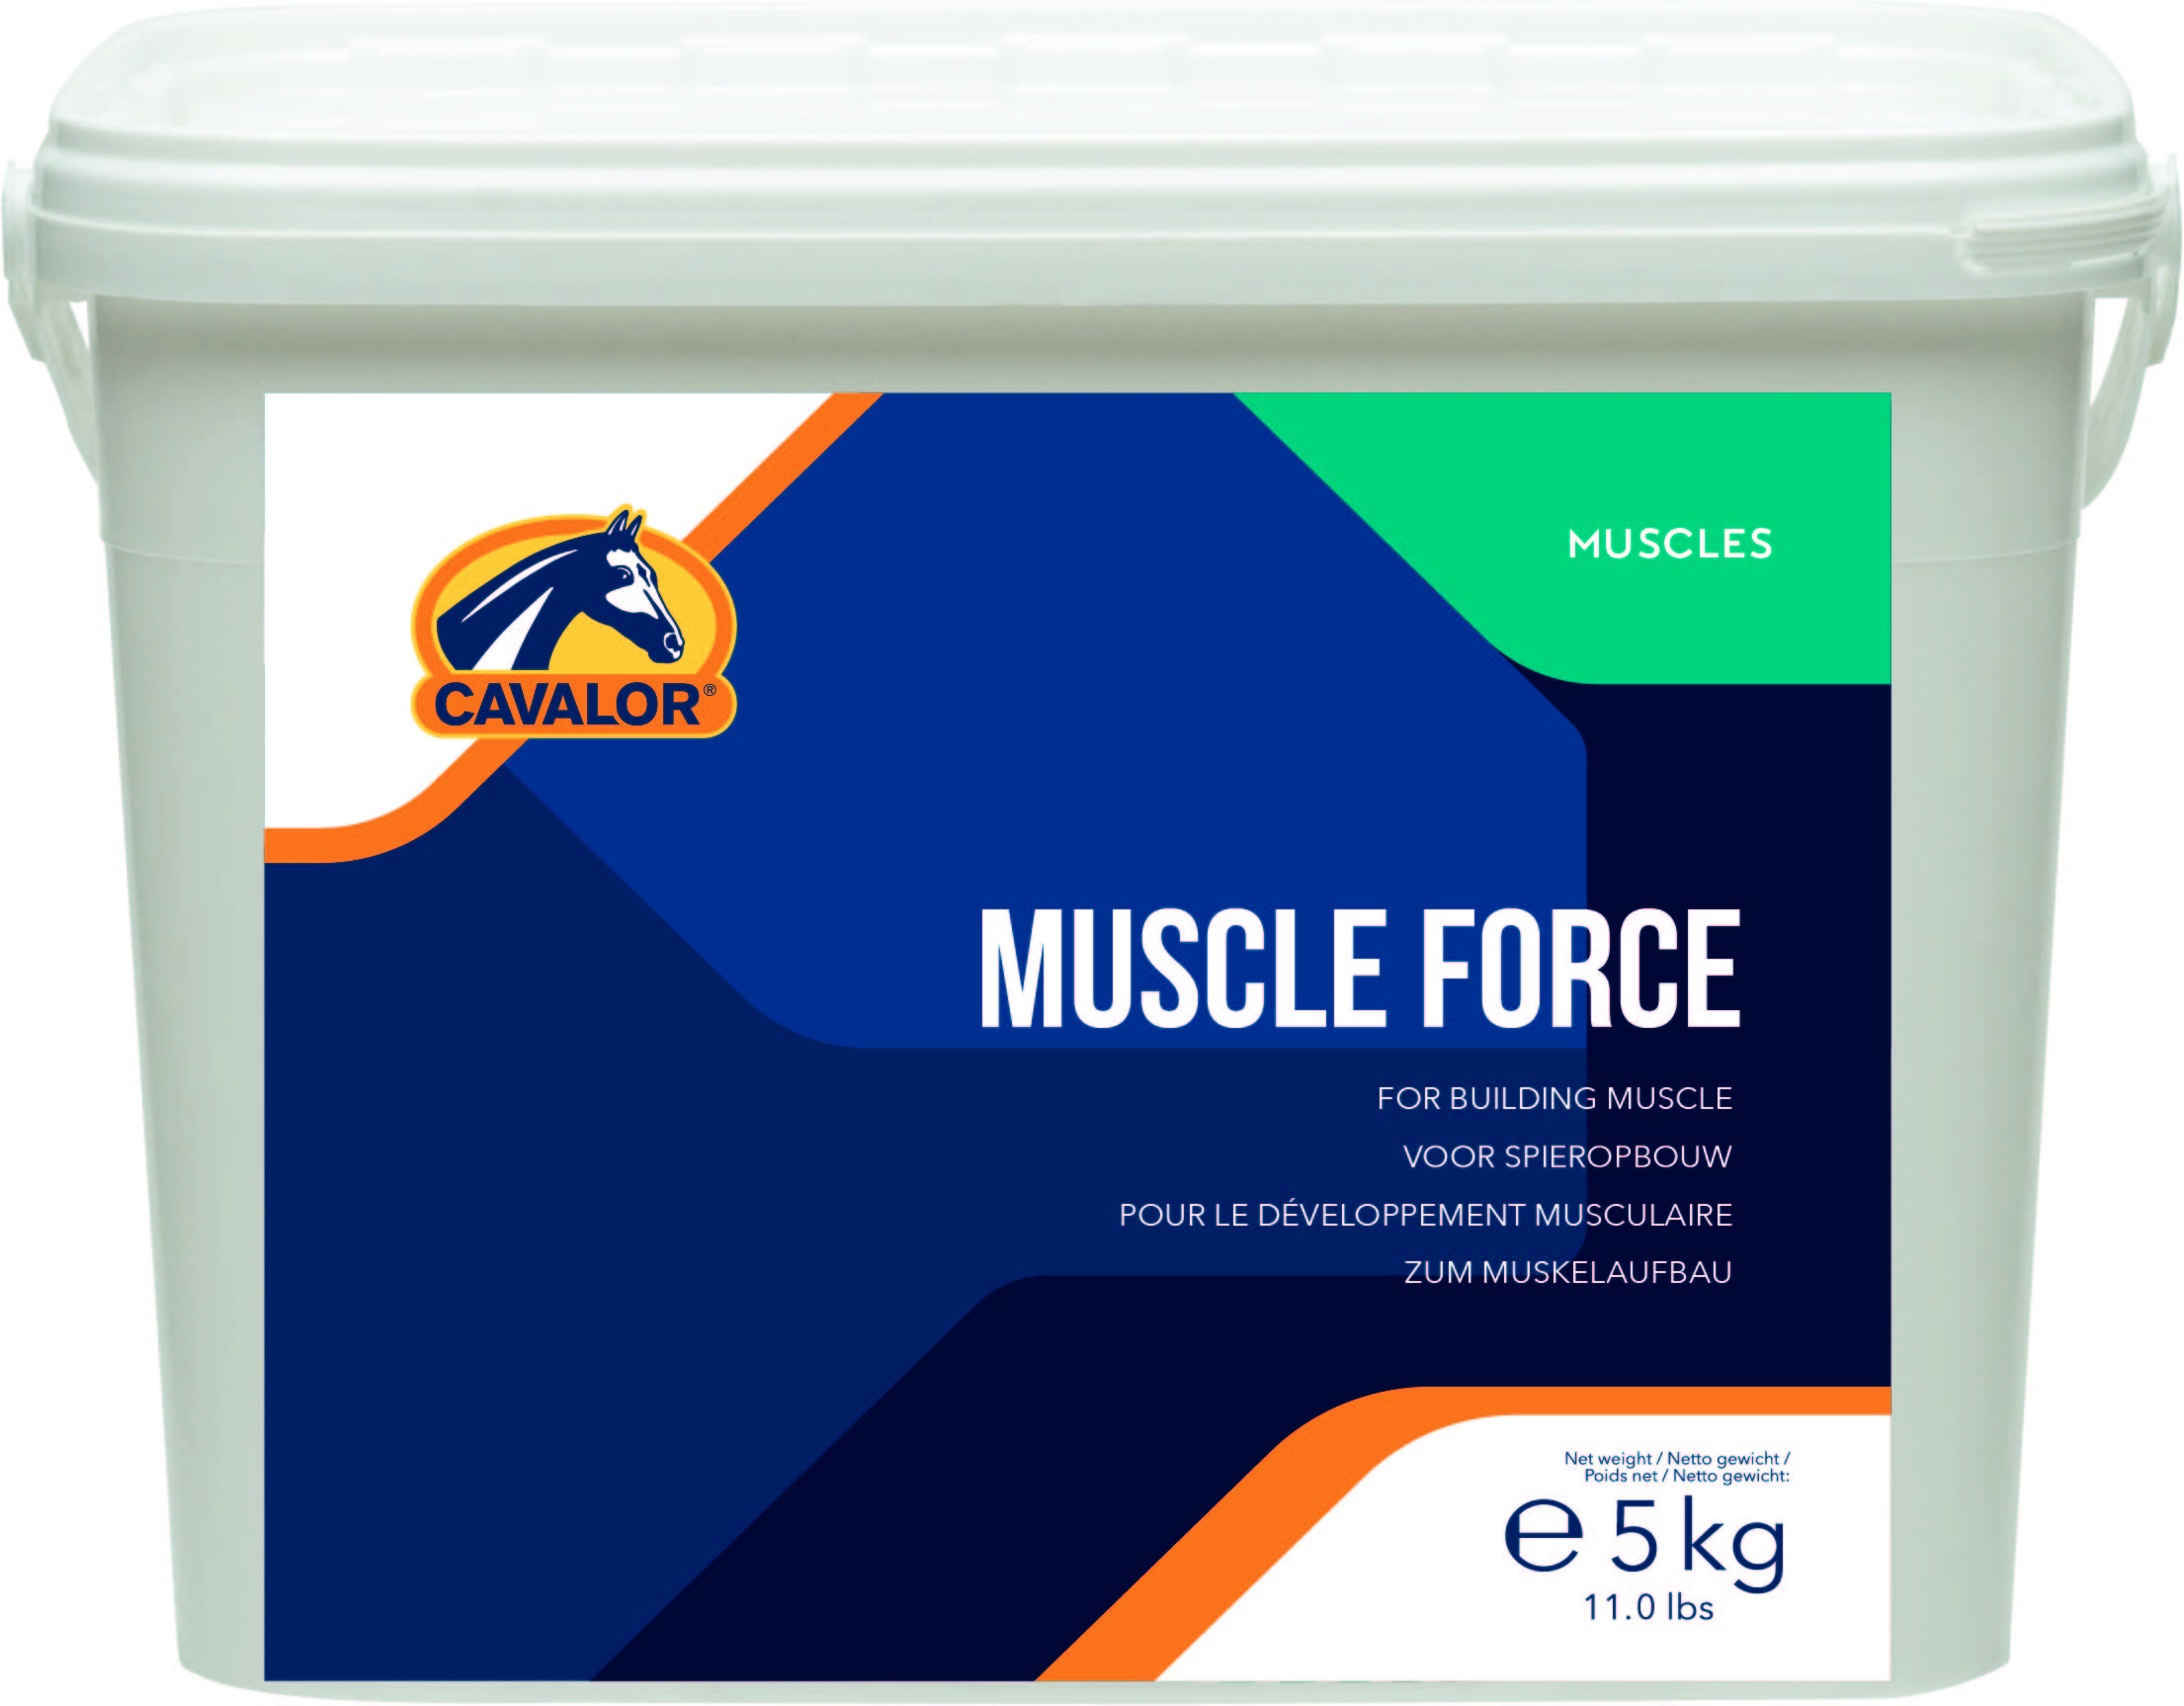 Muscle_Force_506965a6704cf.png